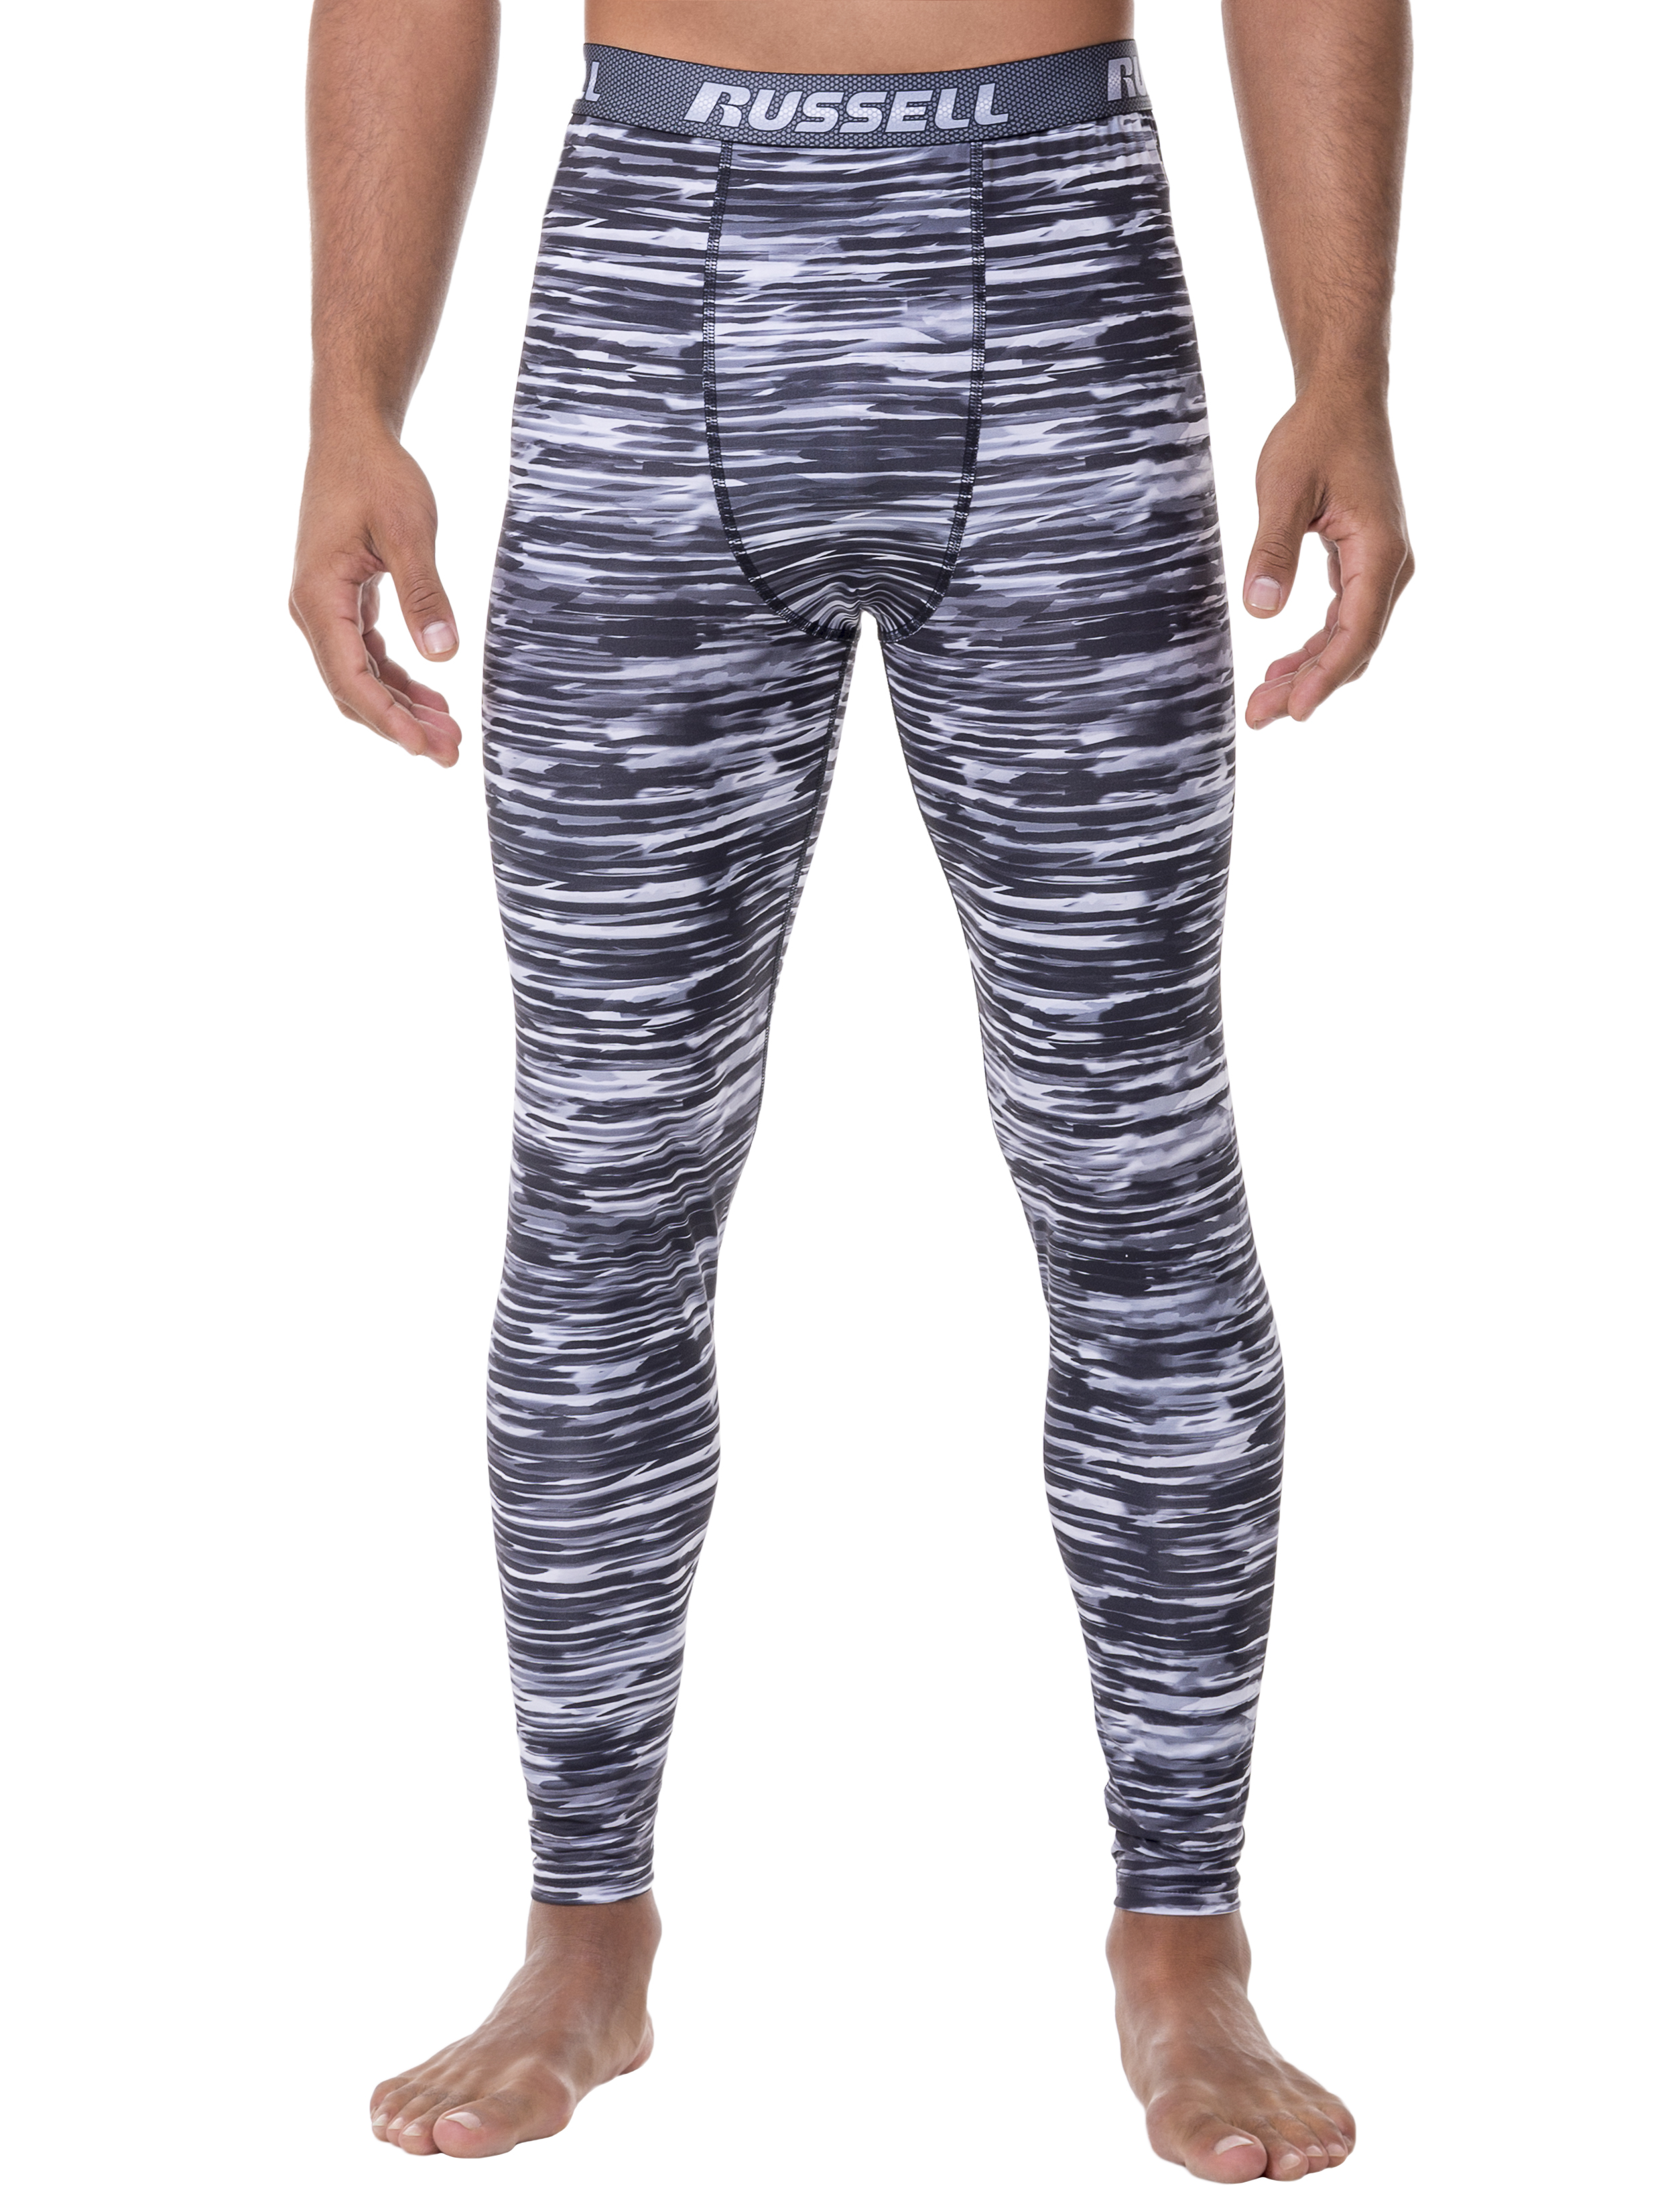 Russell Men's Voltage Performance Baselayer Thermal Bottom by Intradeco